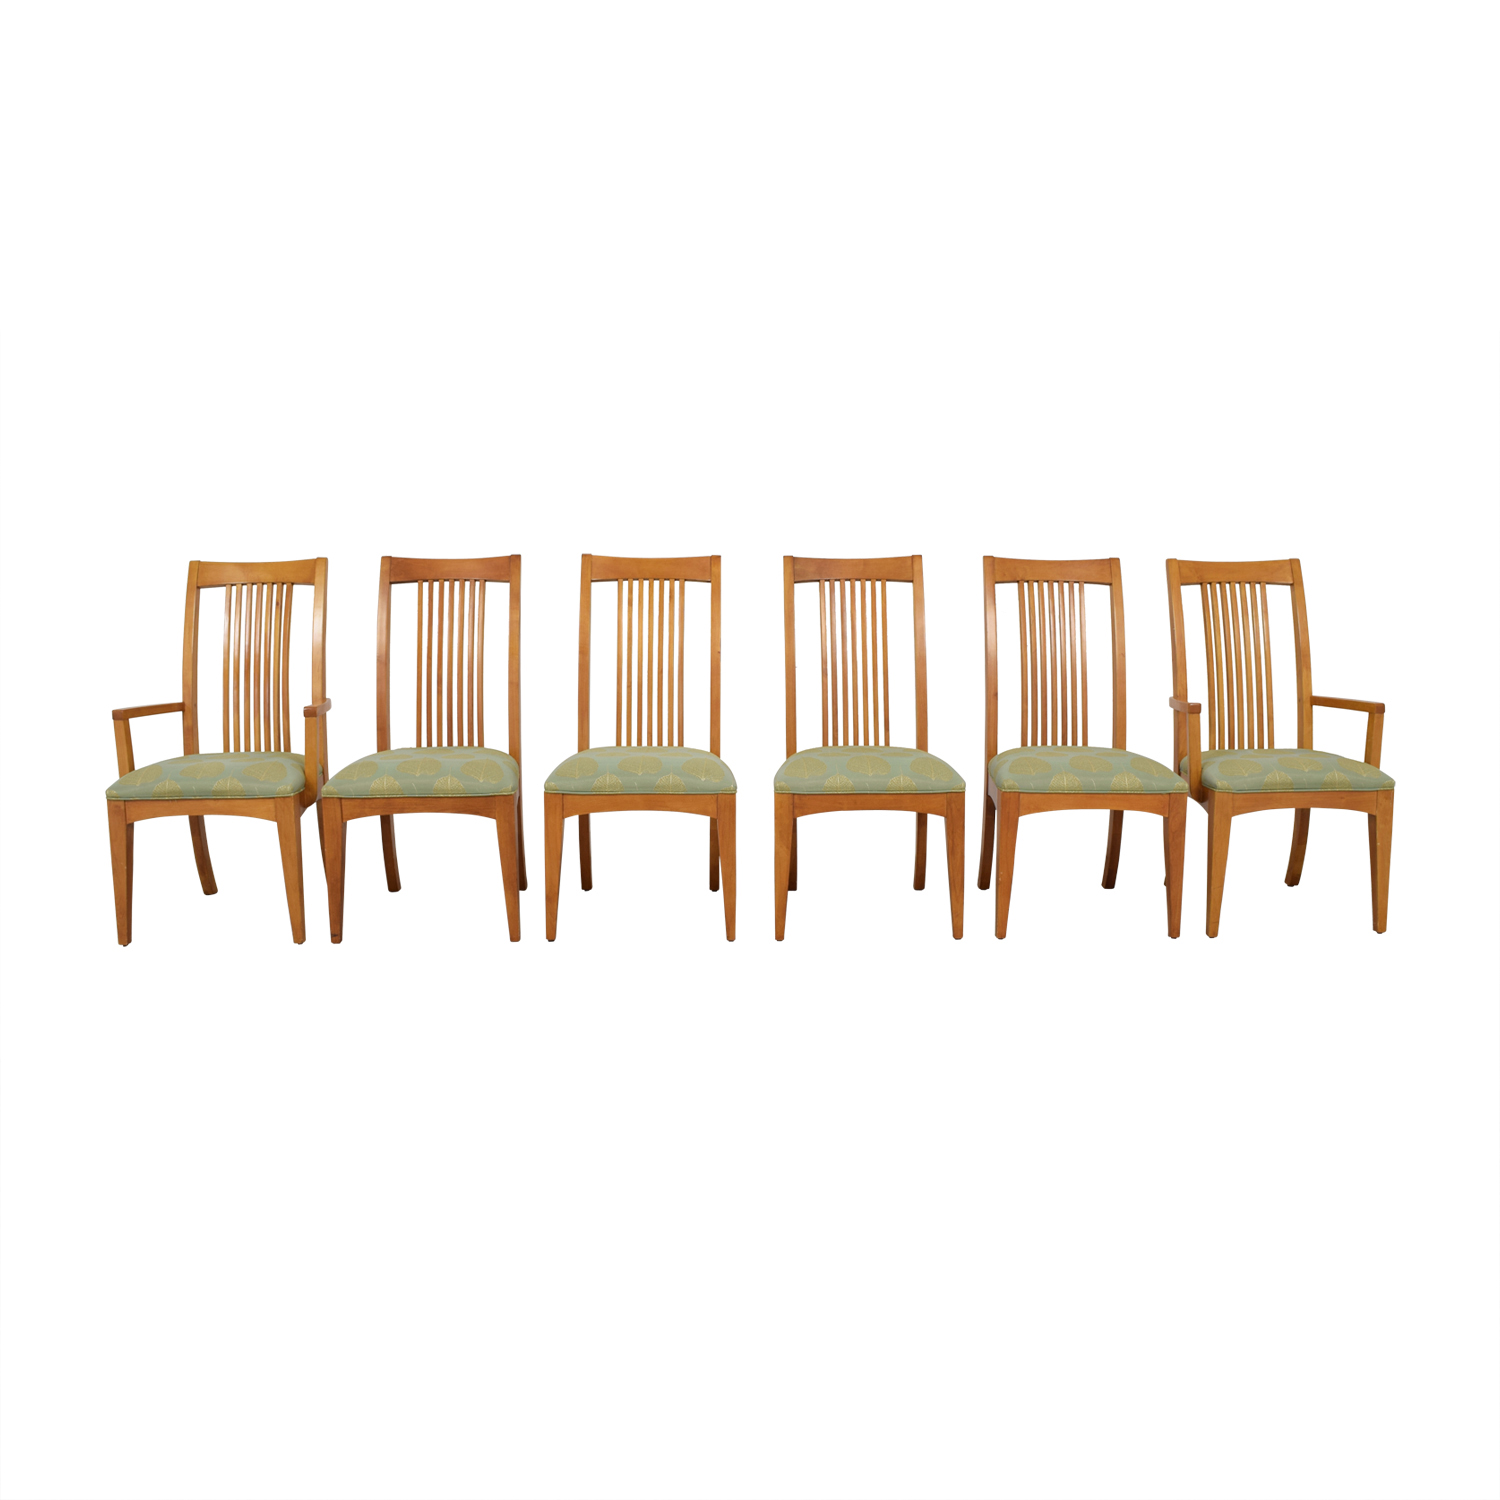 Ethan Allen Ethan Allen New Impressions Sage & Gold Upholstered Dining Chairs / Chairs